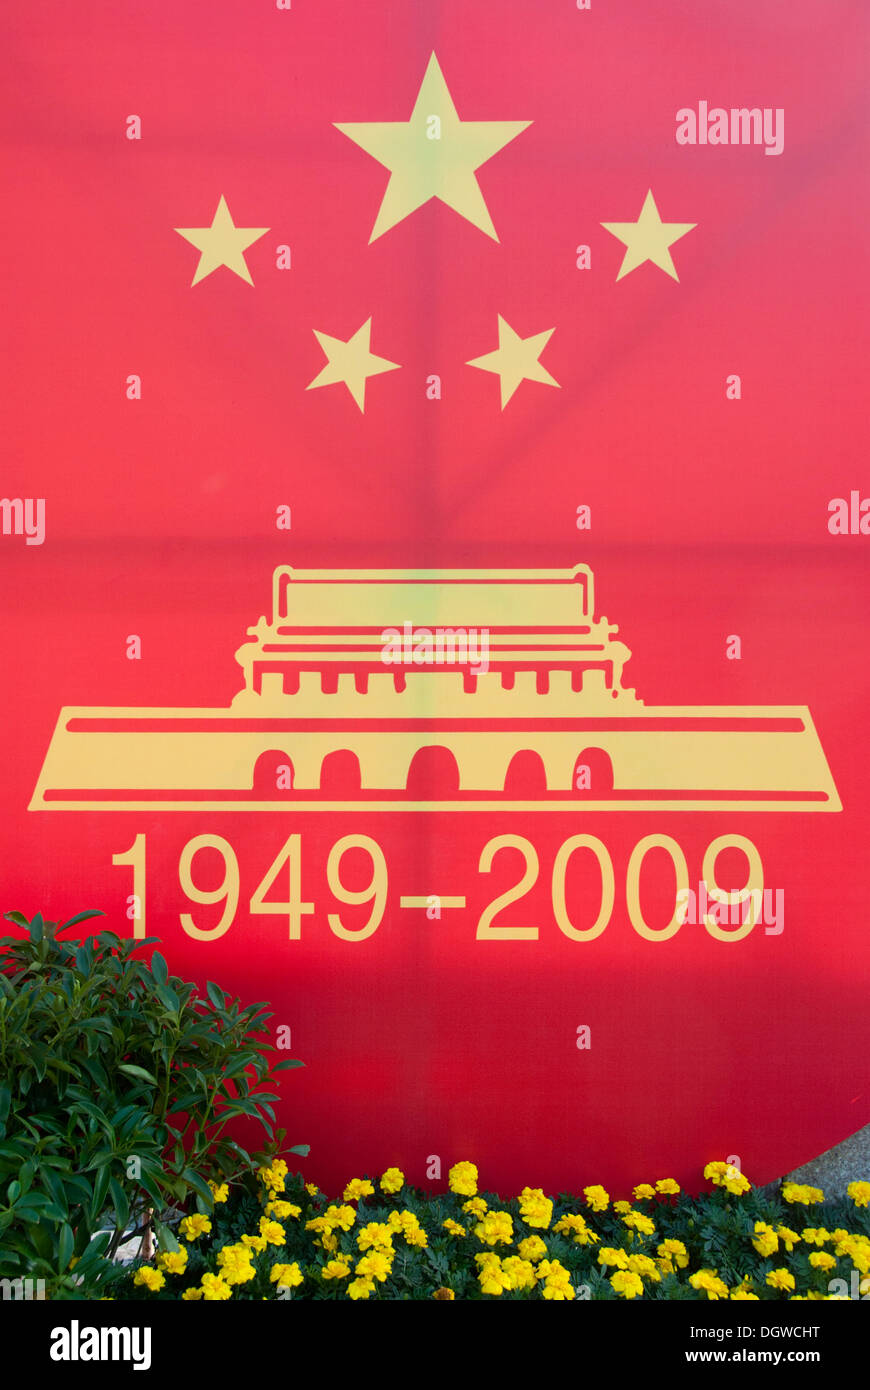 Poster to commemorate a festival for 60 years of China, 1949 - 2009, Jiangcheng, Pu'er City, Yunnan Province - Stock Image